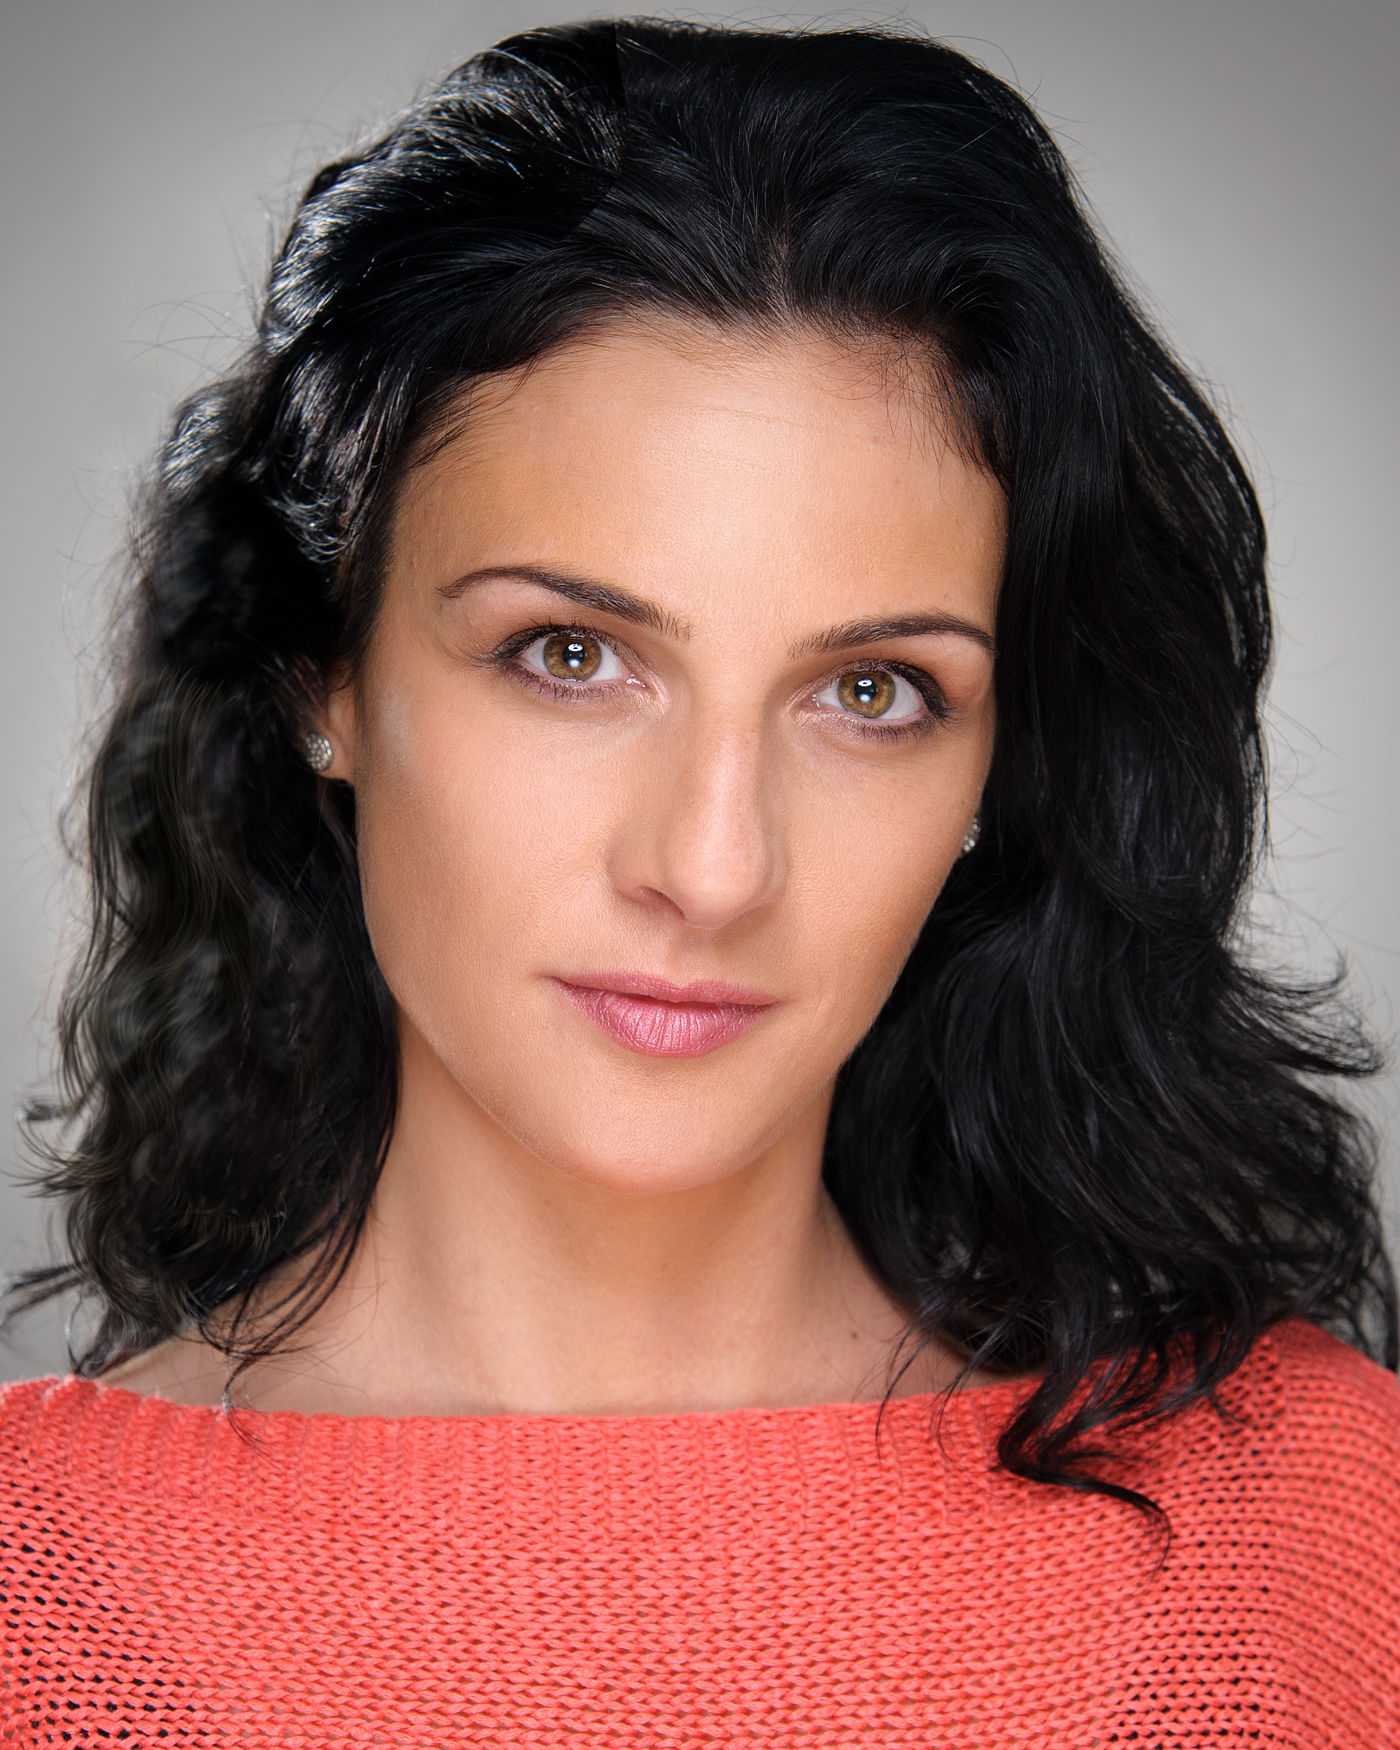 https://gordonscott.photography/wp-content/uploads/2018/07/Maria-Tophunts-Headshot.jpg